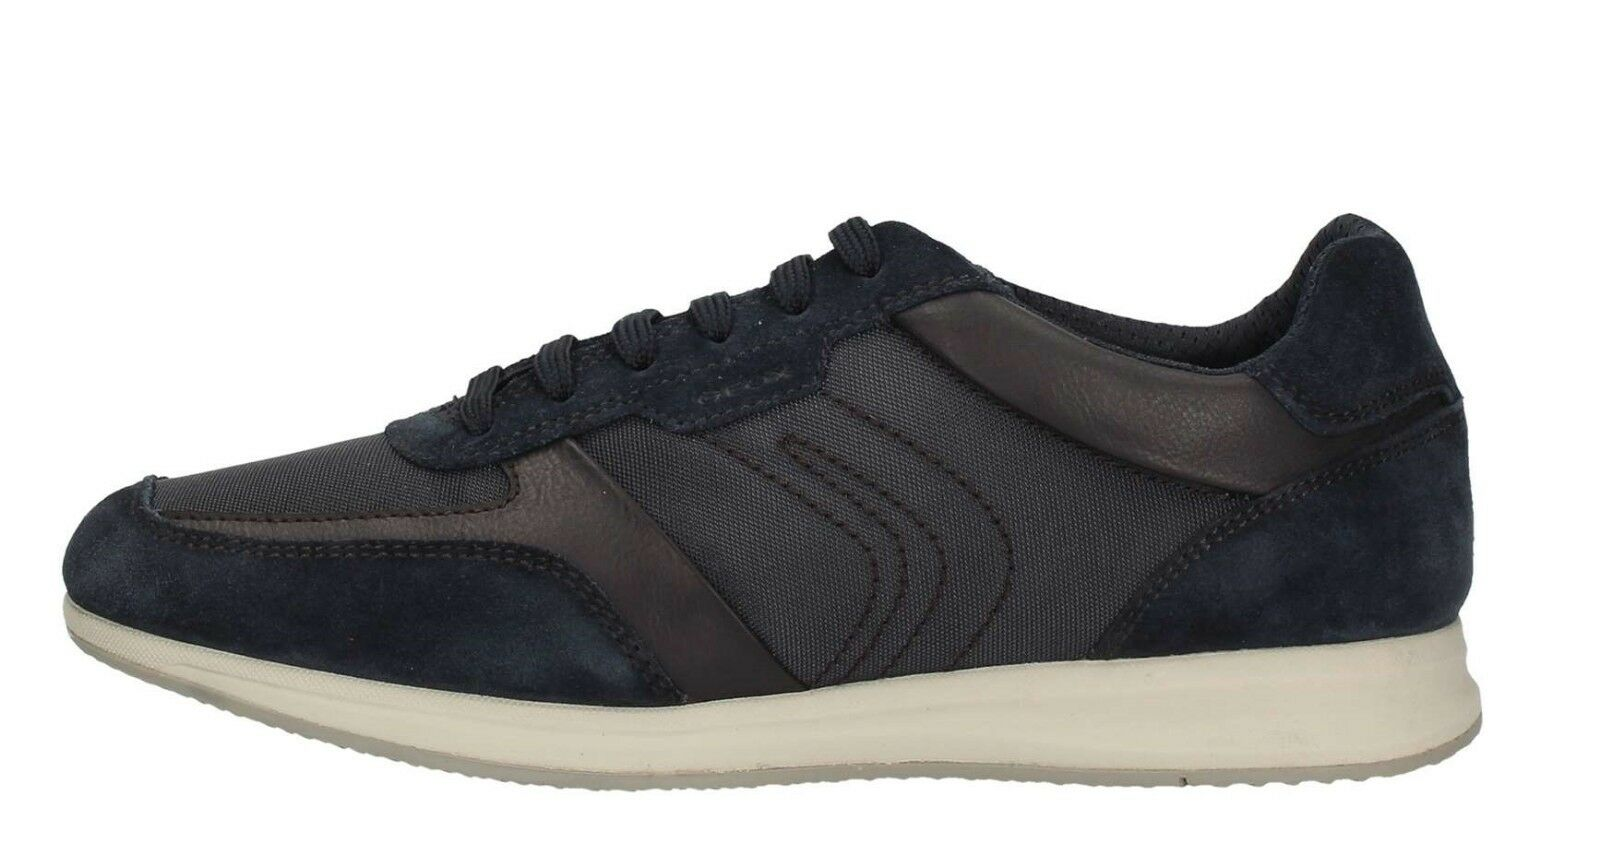 Geox Avery U82h5b Navy Men's shoes Sneakers bluee Leather Suede Fabric Casual